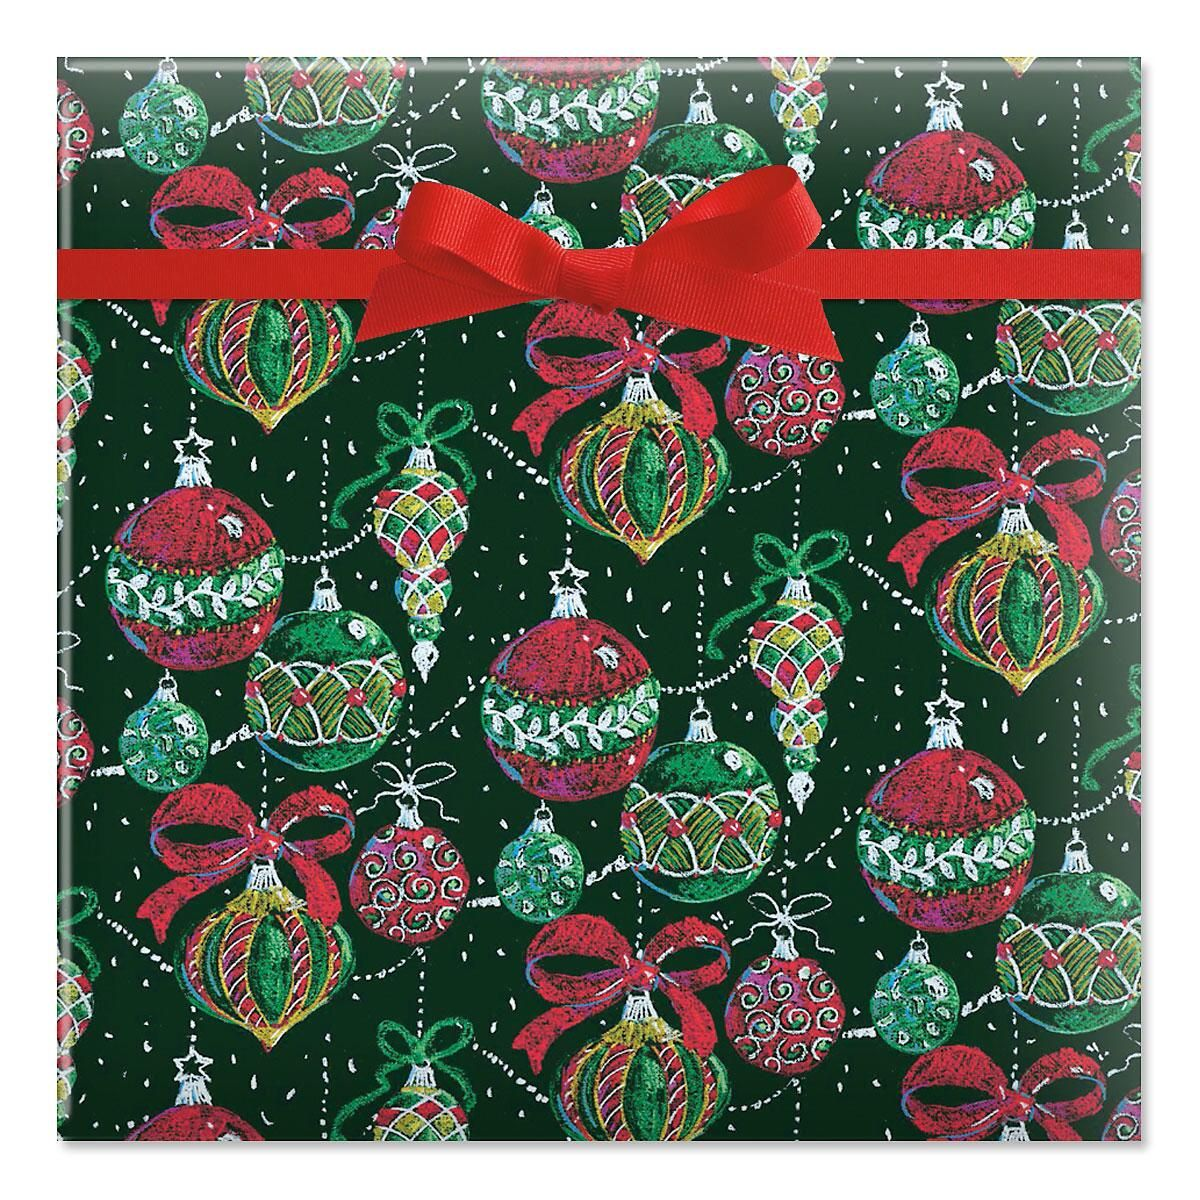 Chalkboard ornaments jumbo rolled gift wrap current catalog for Paper christmas gifts